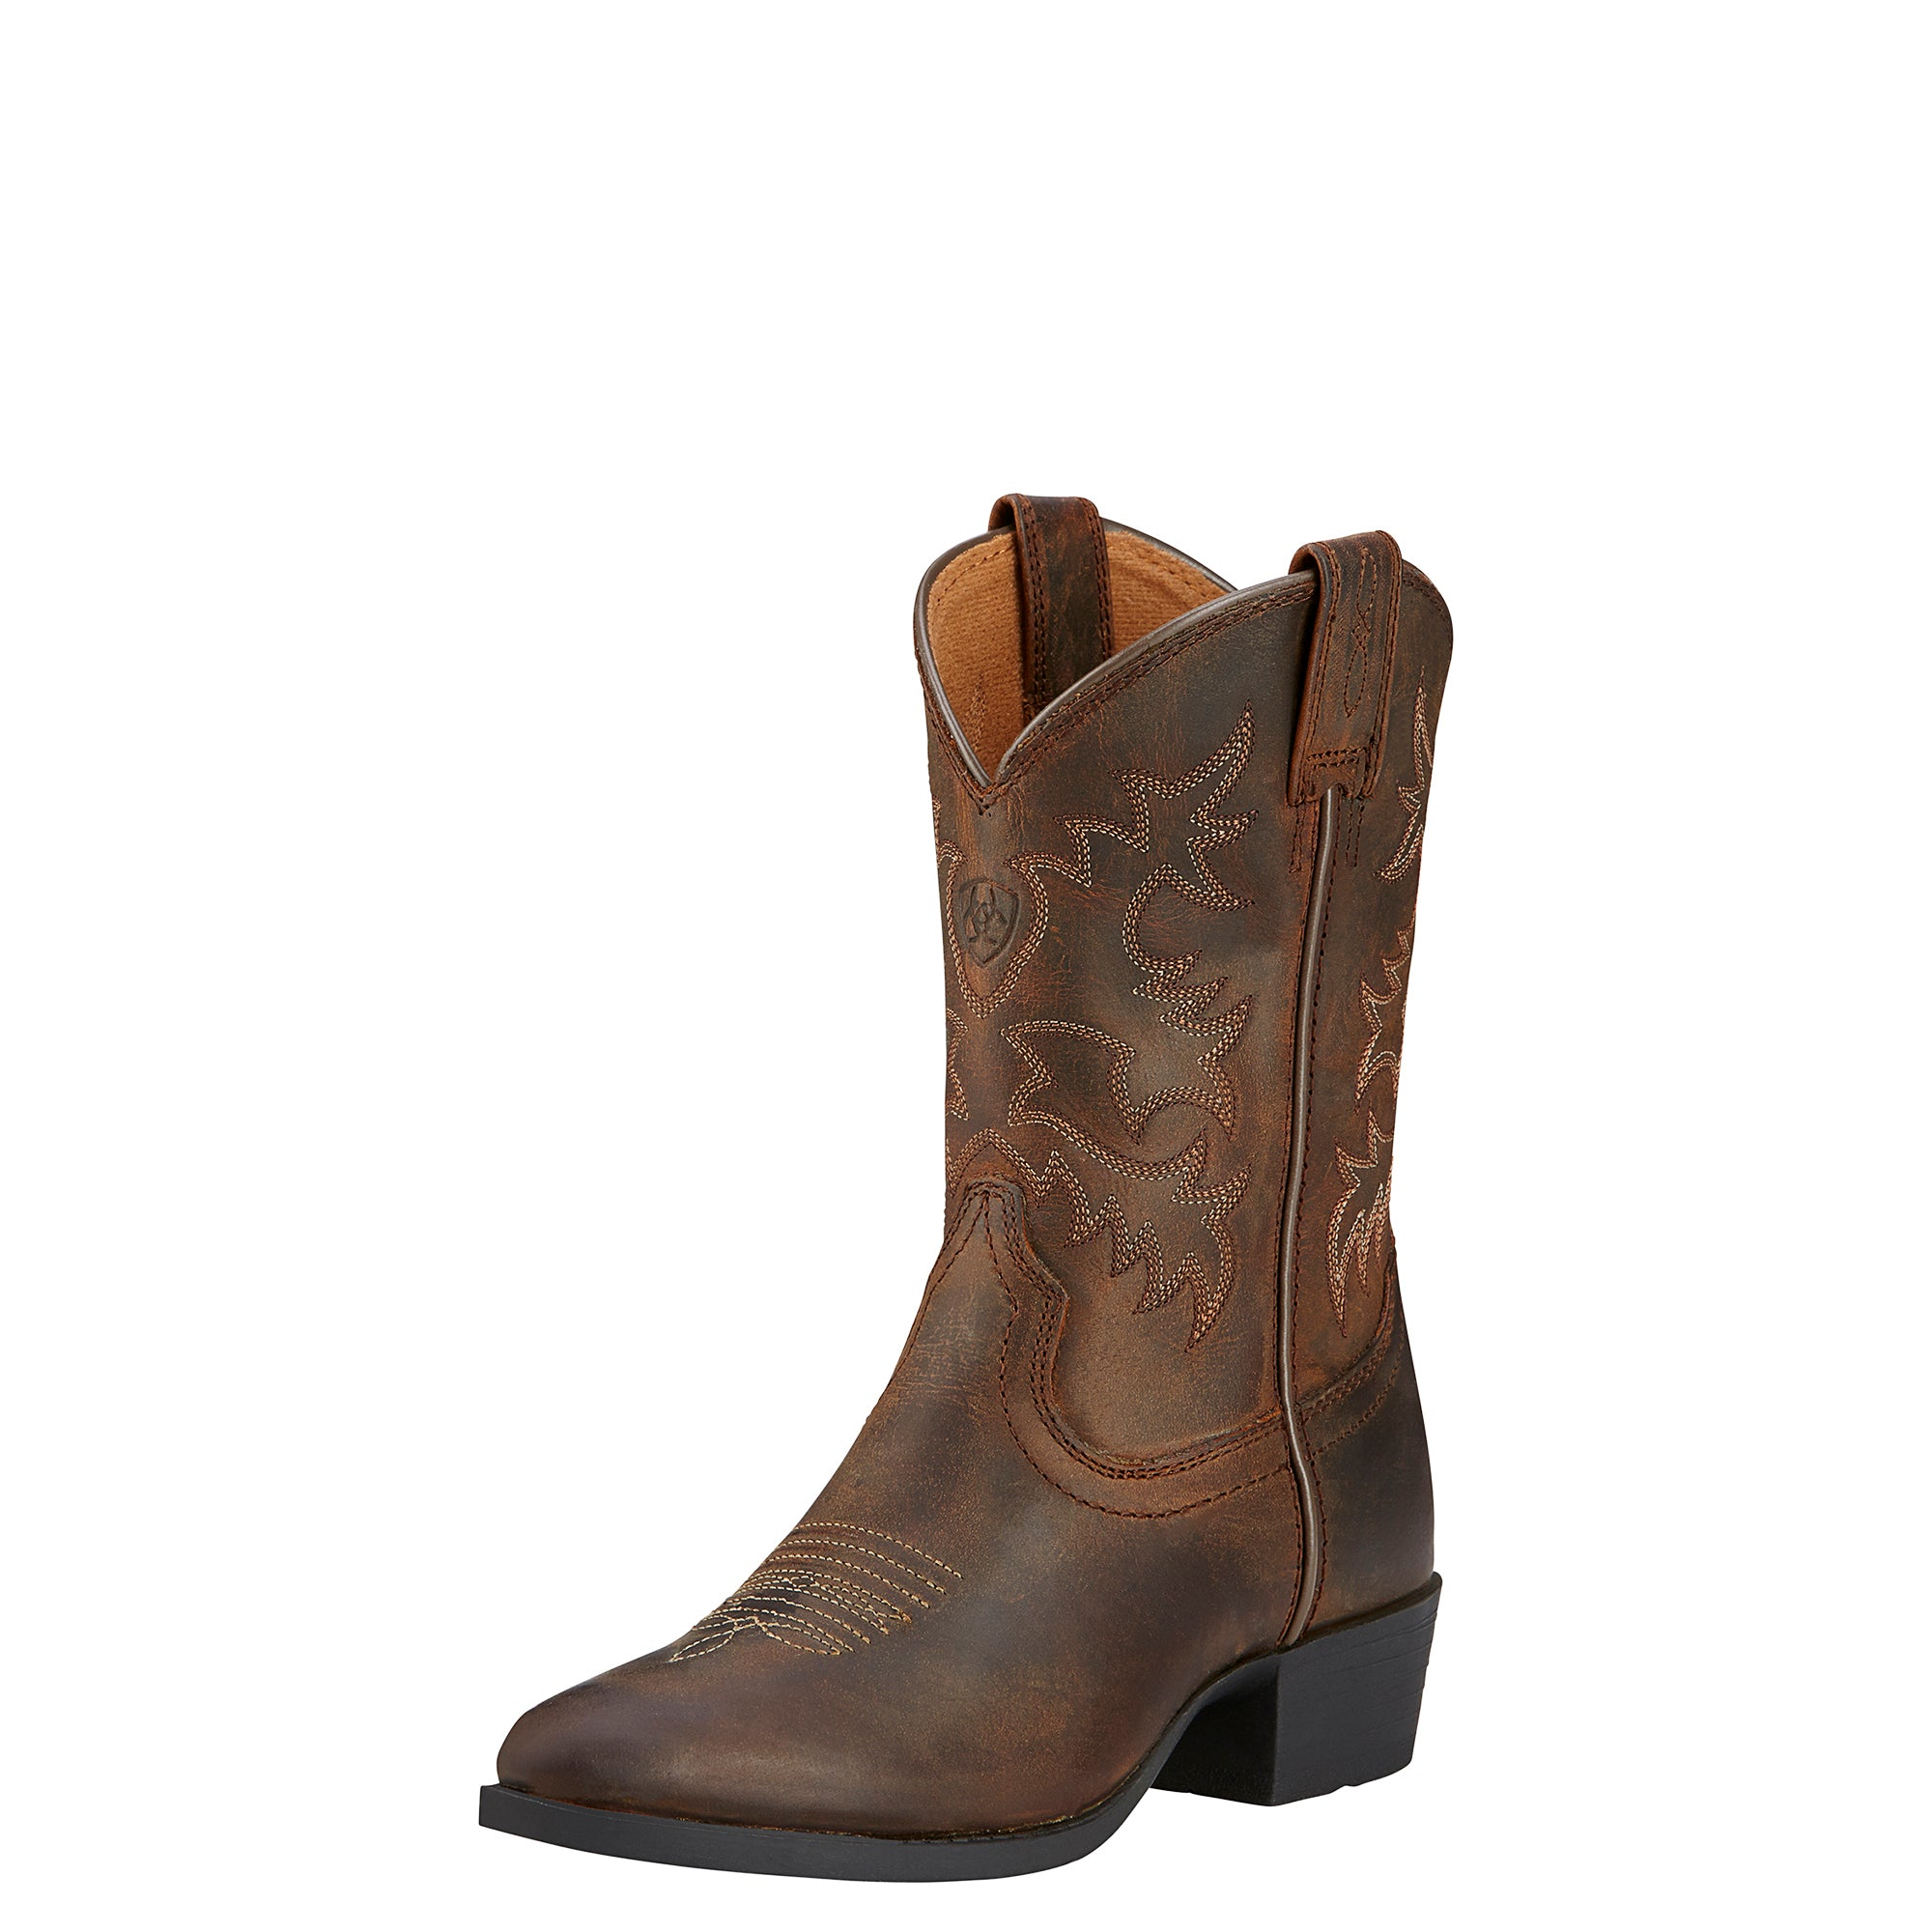 Children's/Youth's Ariat Heritage Western Boot #10001825 (8.5C-6Y)